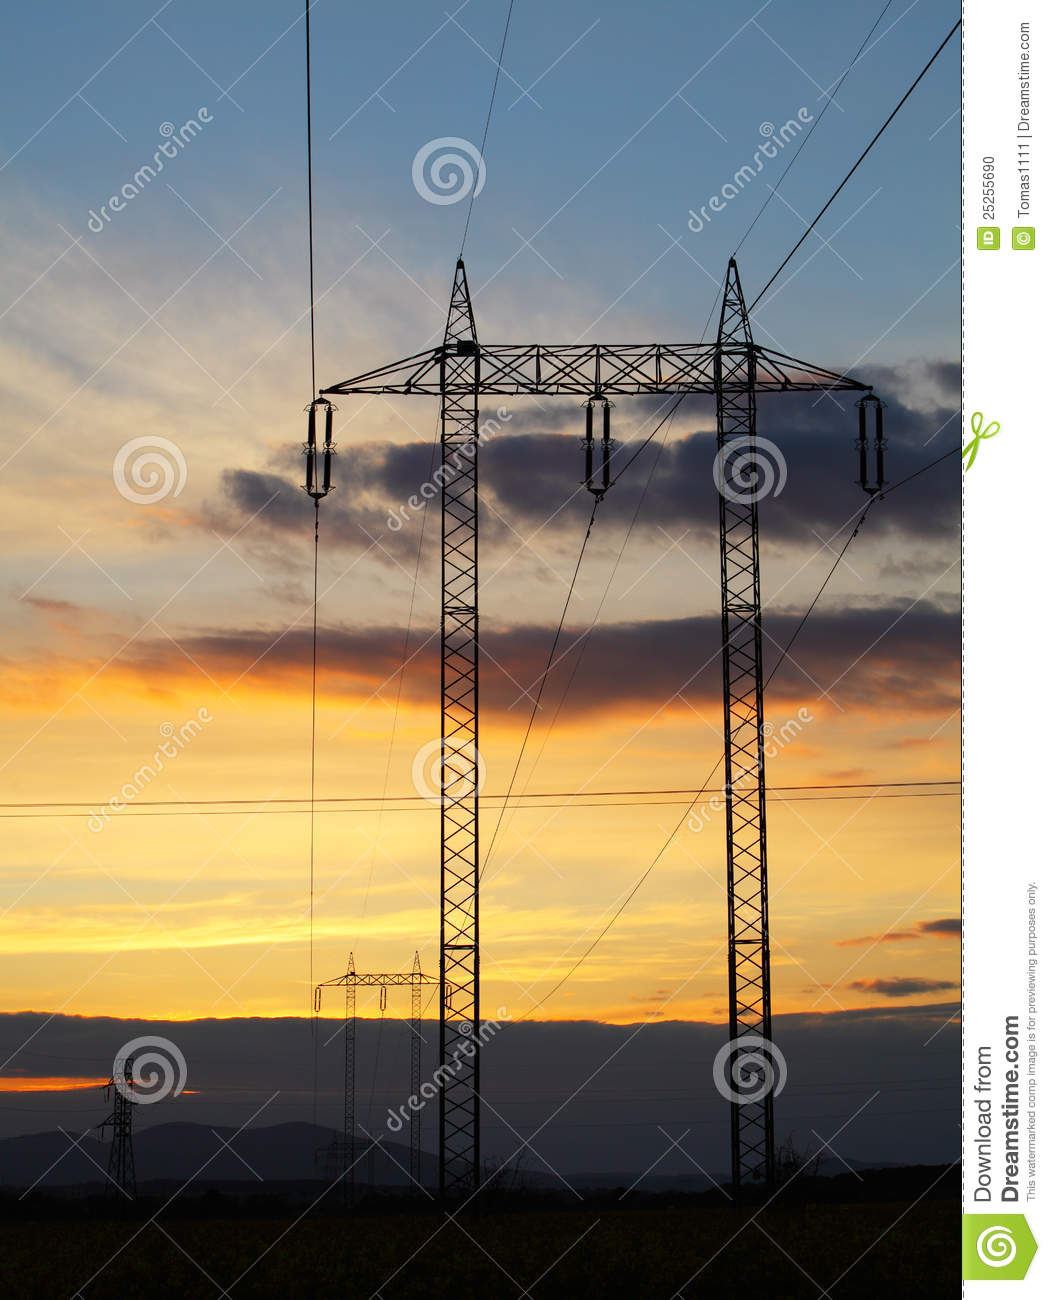 Electricity pylon sunset - power energy